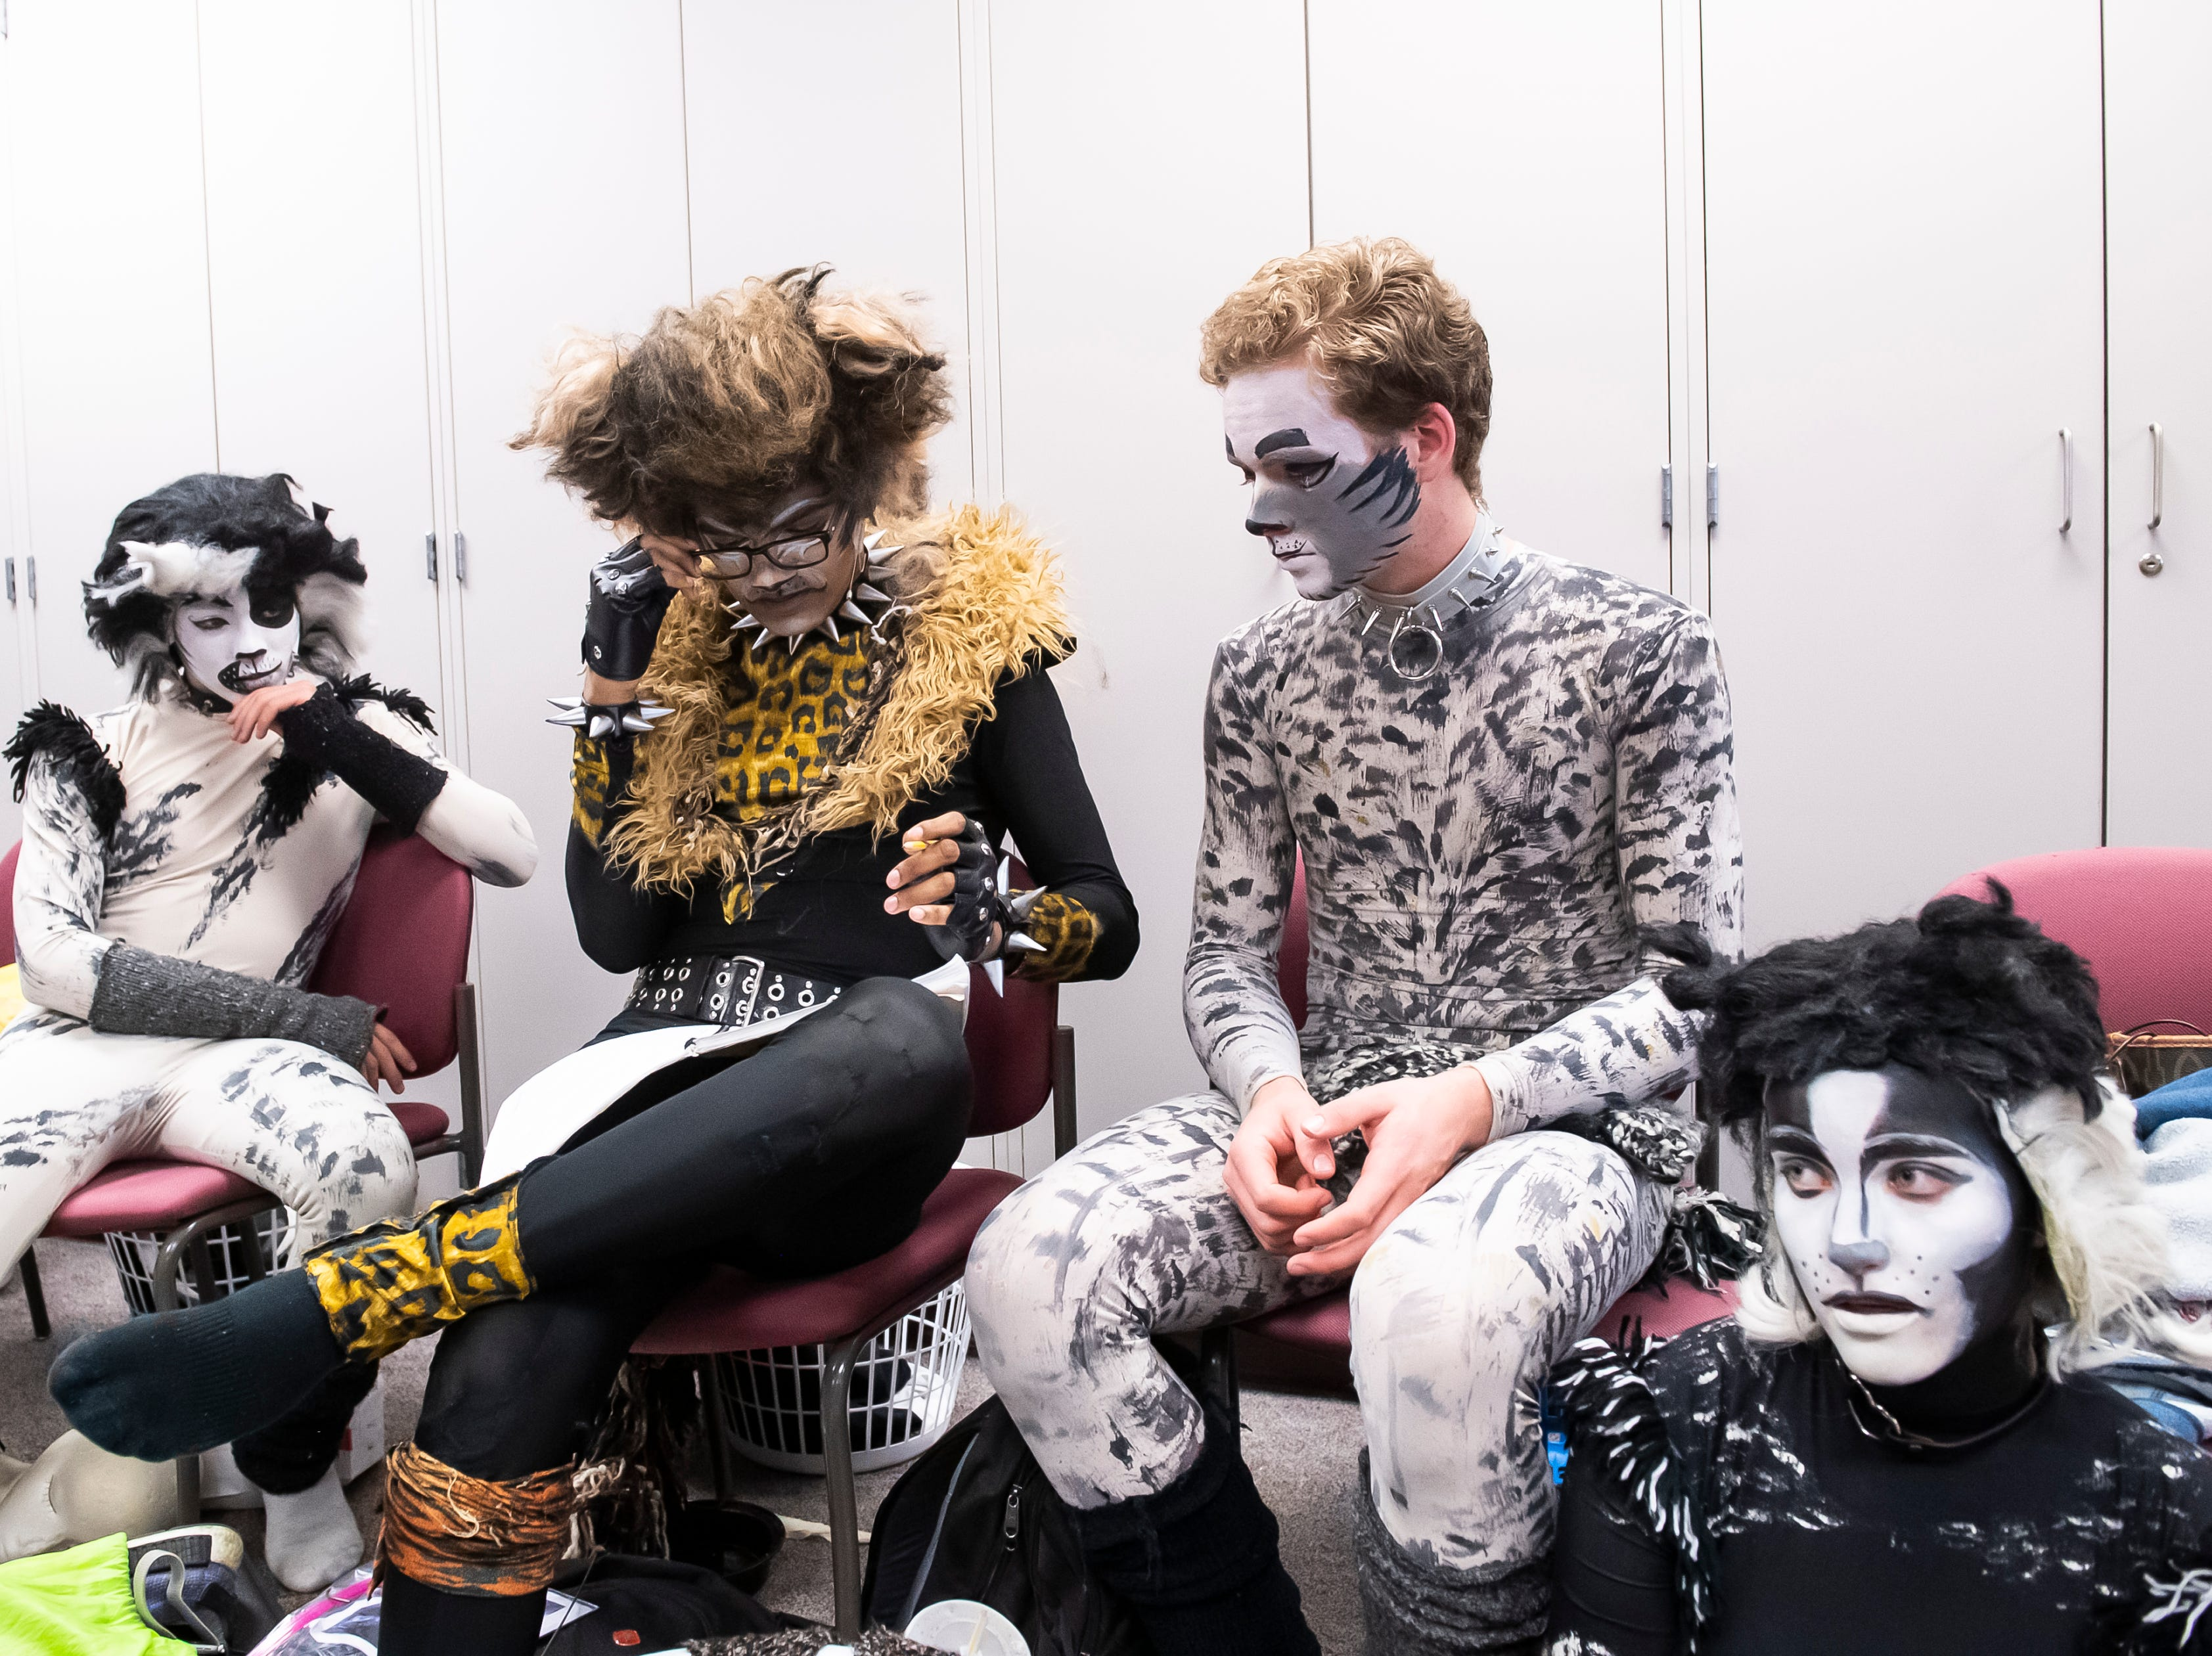 """(From left) Toby Groft, Diego Oropeza, Sodi Krehler and Olivia Keefer wait before the start of a dress rehearsal for Hanover High School's production of """"Cats"""" on Wednesday, April 10, 2019."""